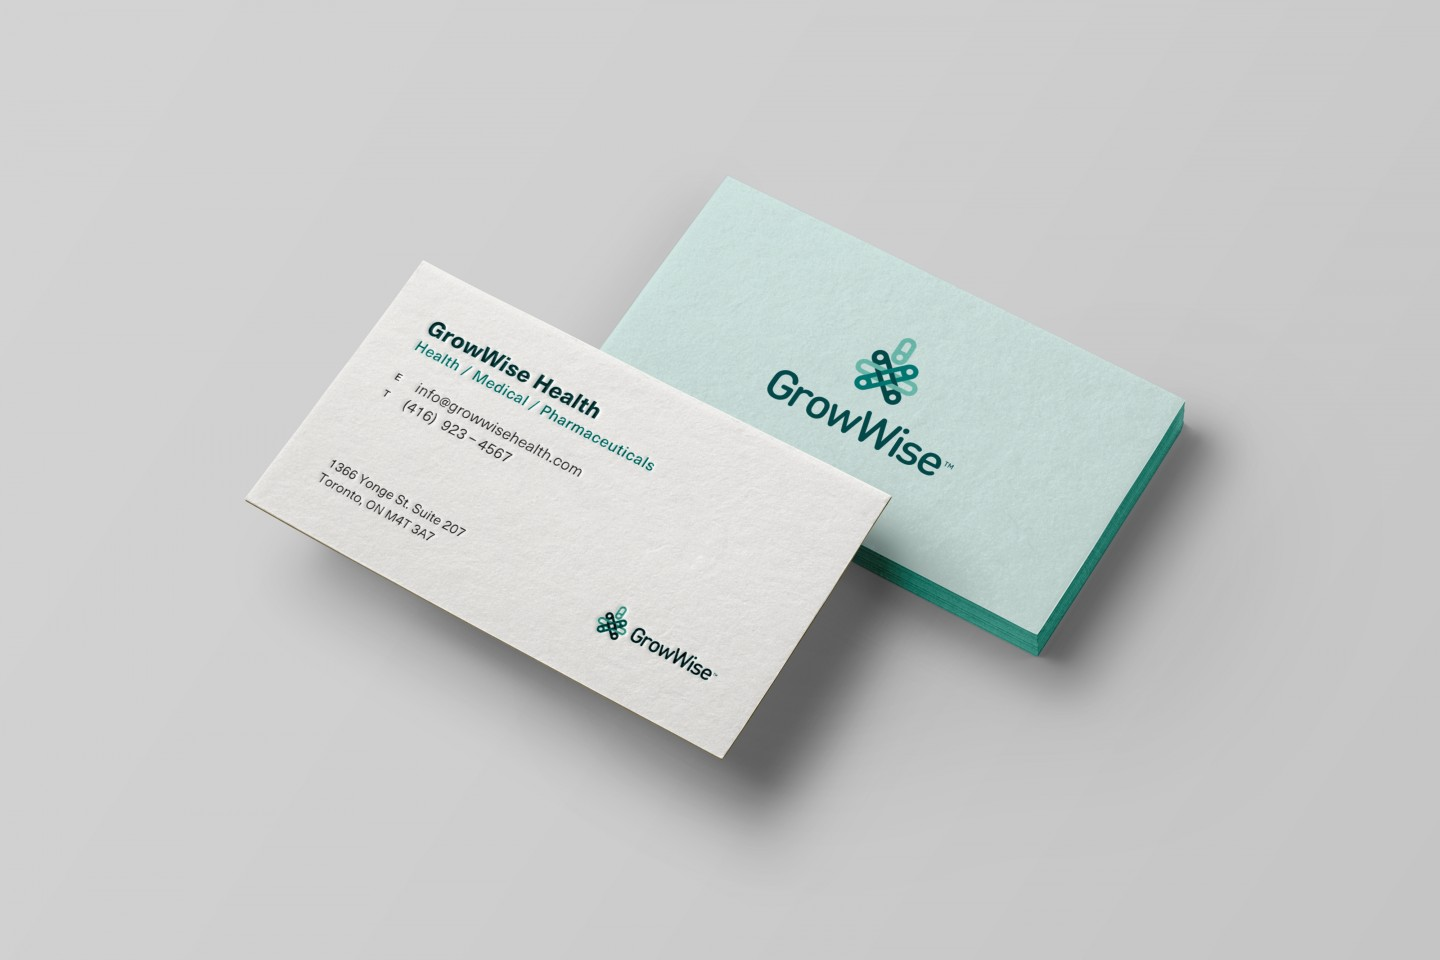 GrowWise Business Cards